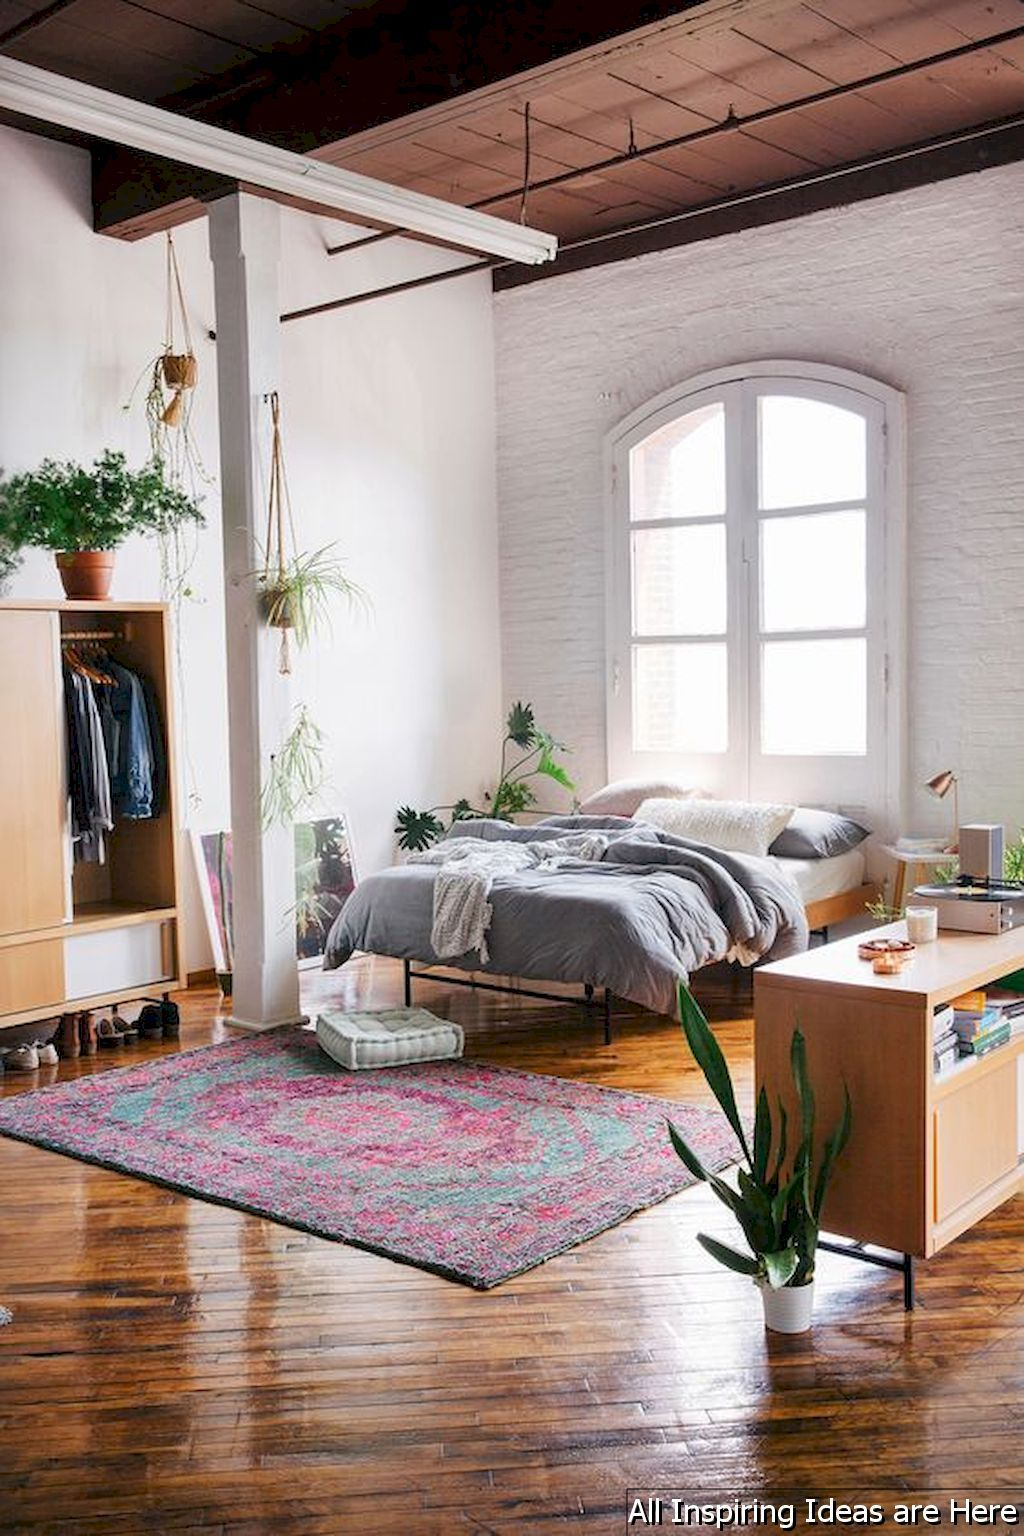 Loft bedroom layout ideas   Nice Loft Bedroom Design and Decor Ideas in   Home decor